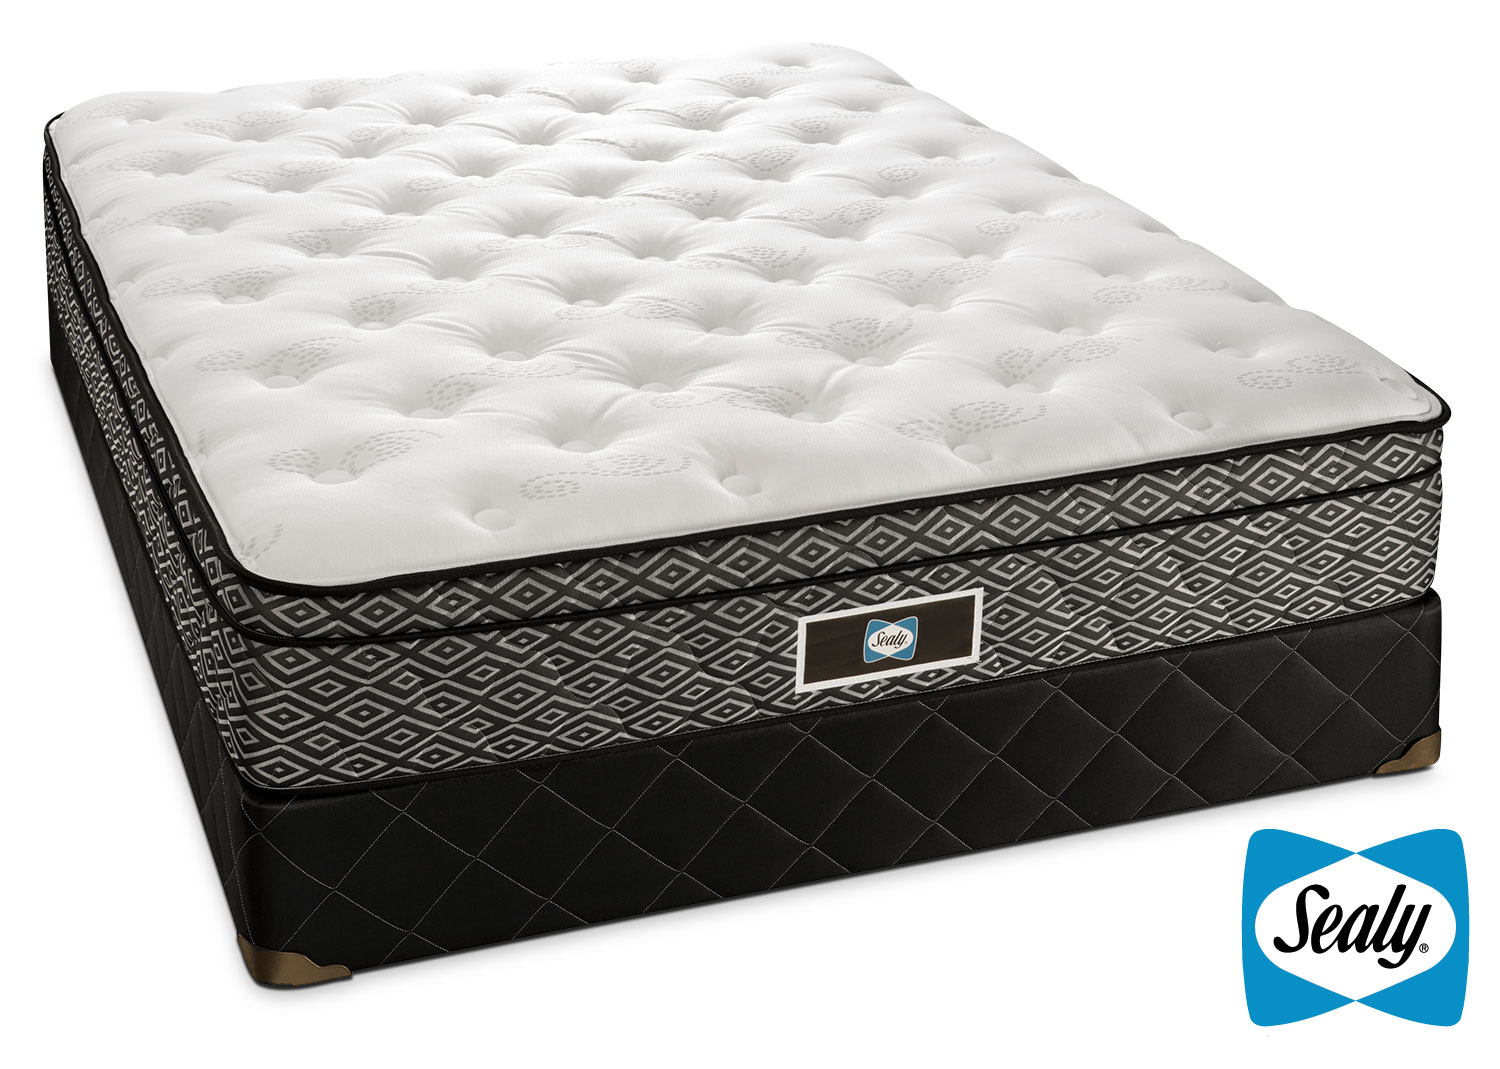 Mattresses and Bedding - Sealy Nero Full Mattress/Boxspring Set